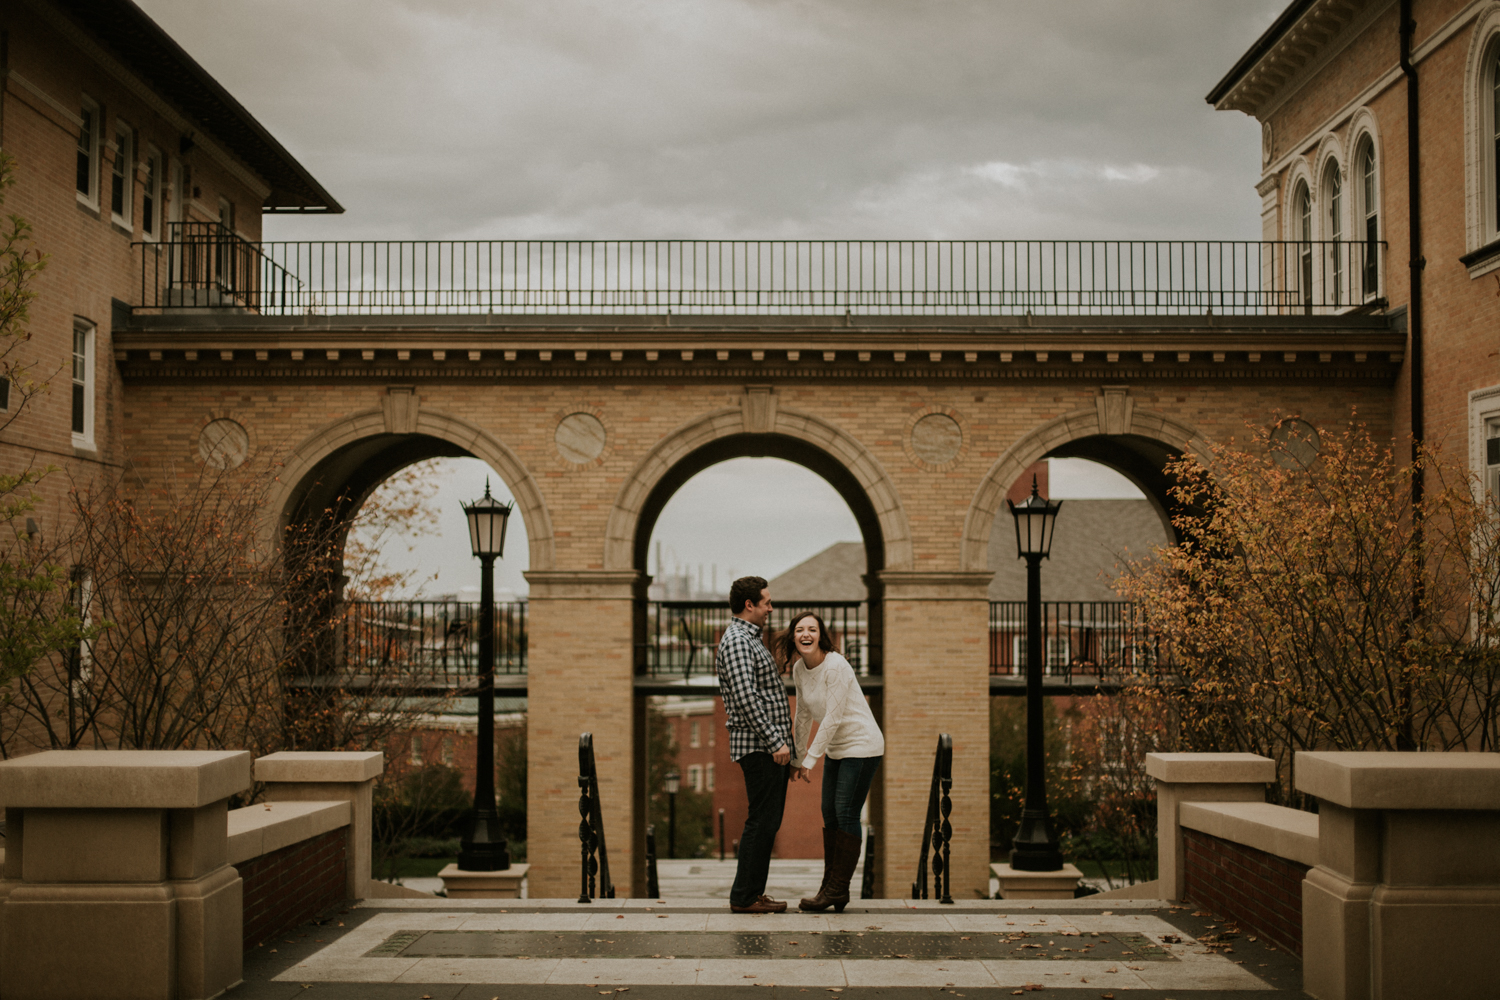 tufts_university_engagement_sweater_weather_fall_autumn_foliage_adventure_outdoors_trees_dress_outdoors_connecticut_rhode_island_massachusetts_new_england_wedding_photography_photographer_natural_laid_back_fun_light_engagement_session.jpg